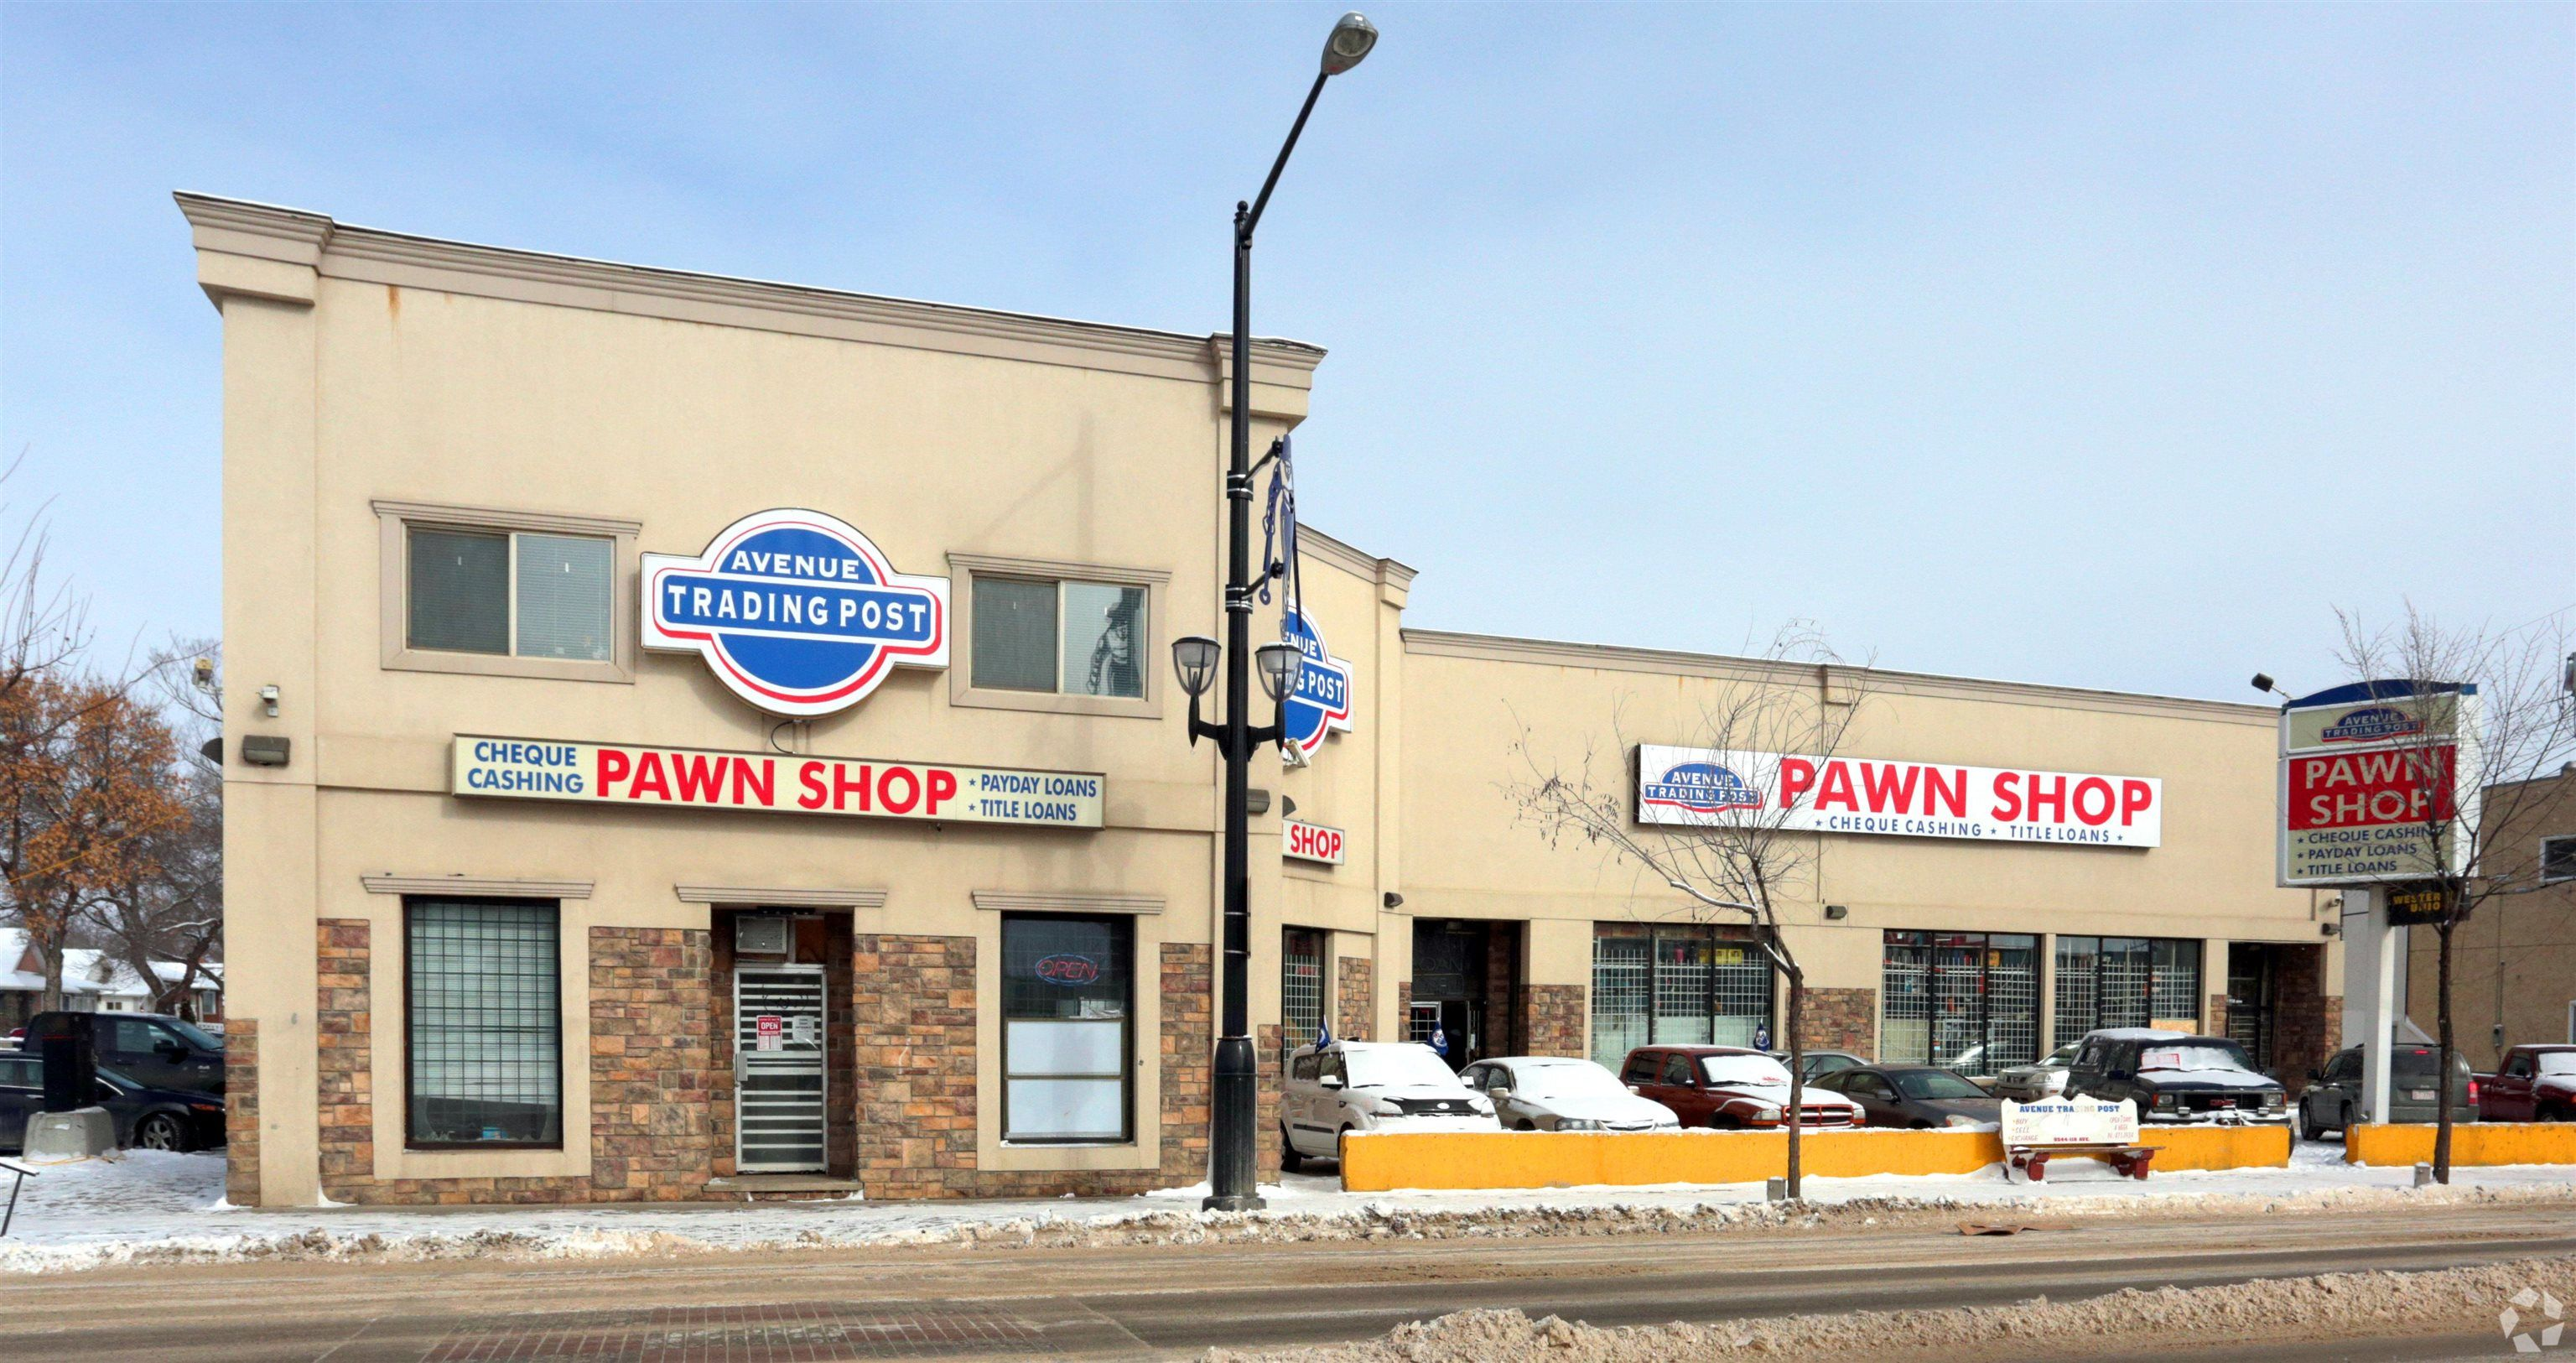 Main Photo: 9544 118 Avenue in Edmonton: Zone 05 Business with Property for sale : MLS®# E4260066